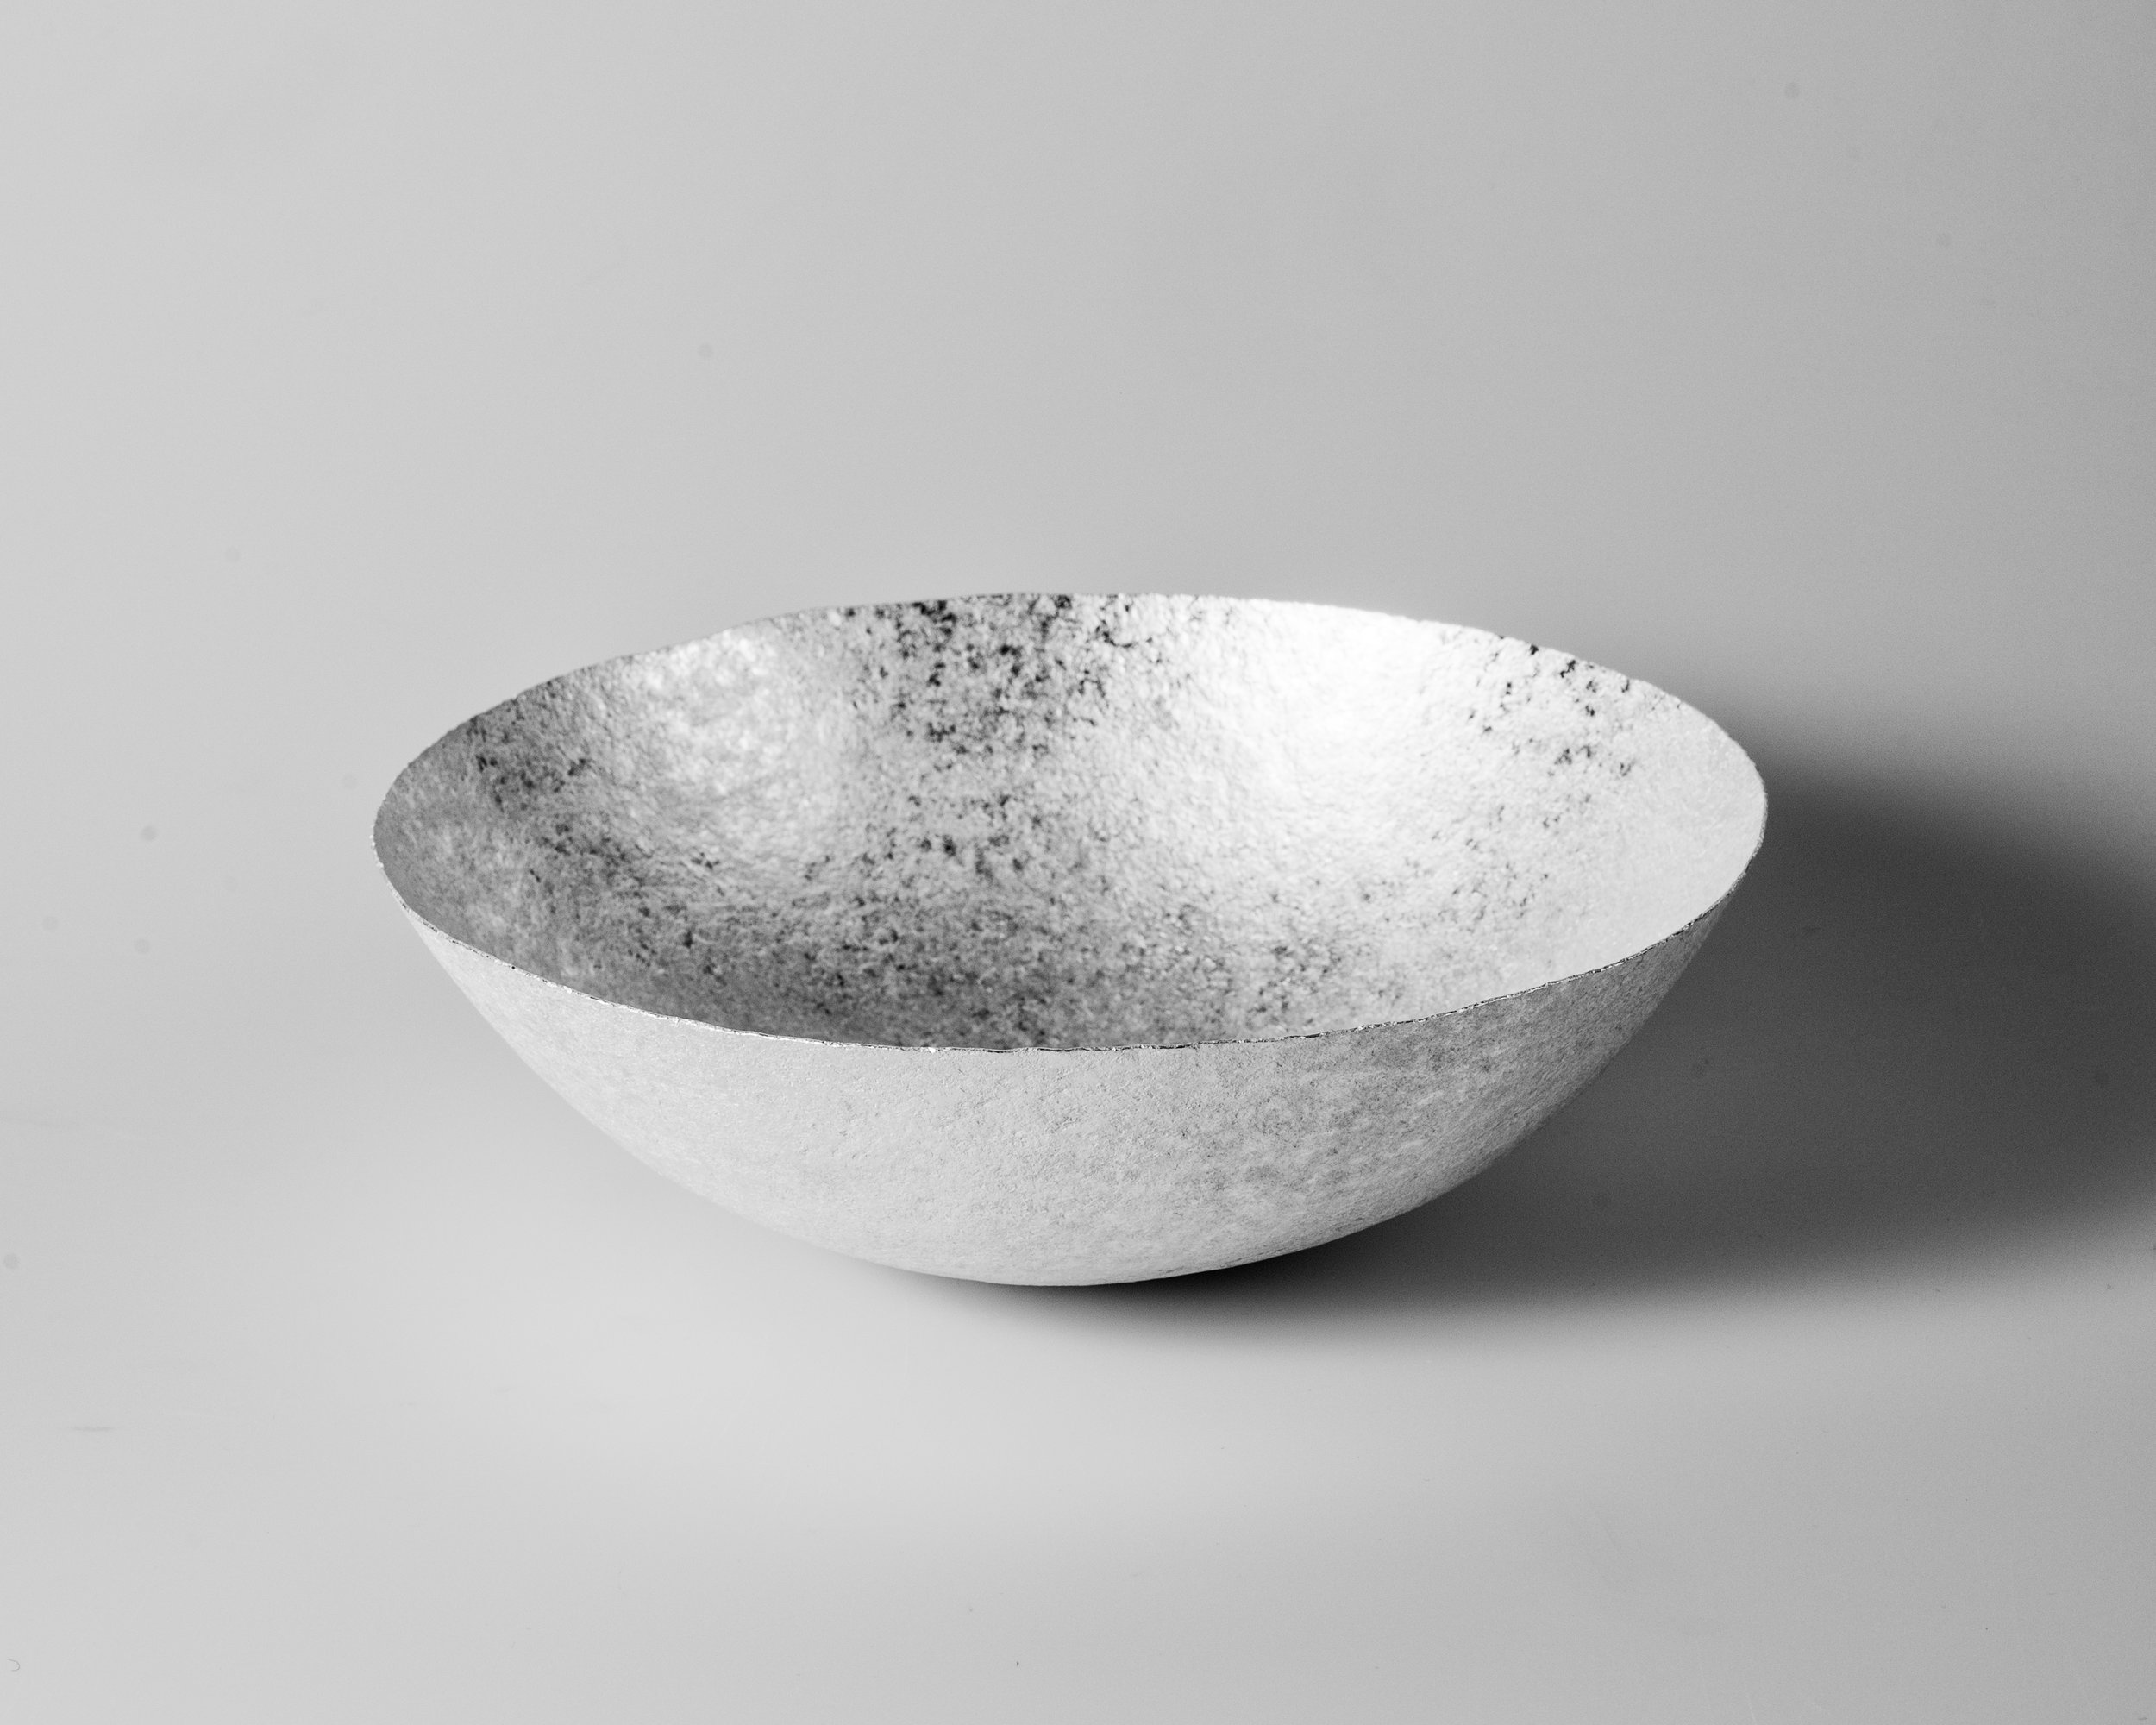 The importance of water V (Bowl), 2018  | Forged silver. 925 S. 662 g. H. 8.5 x W. 26 cm.  Photo credit: Christian Tviberg